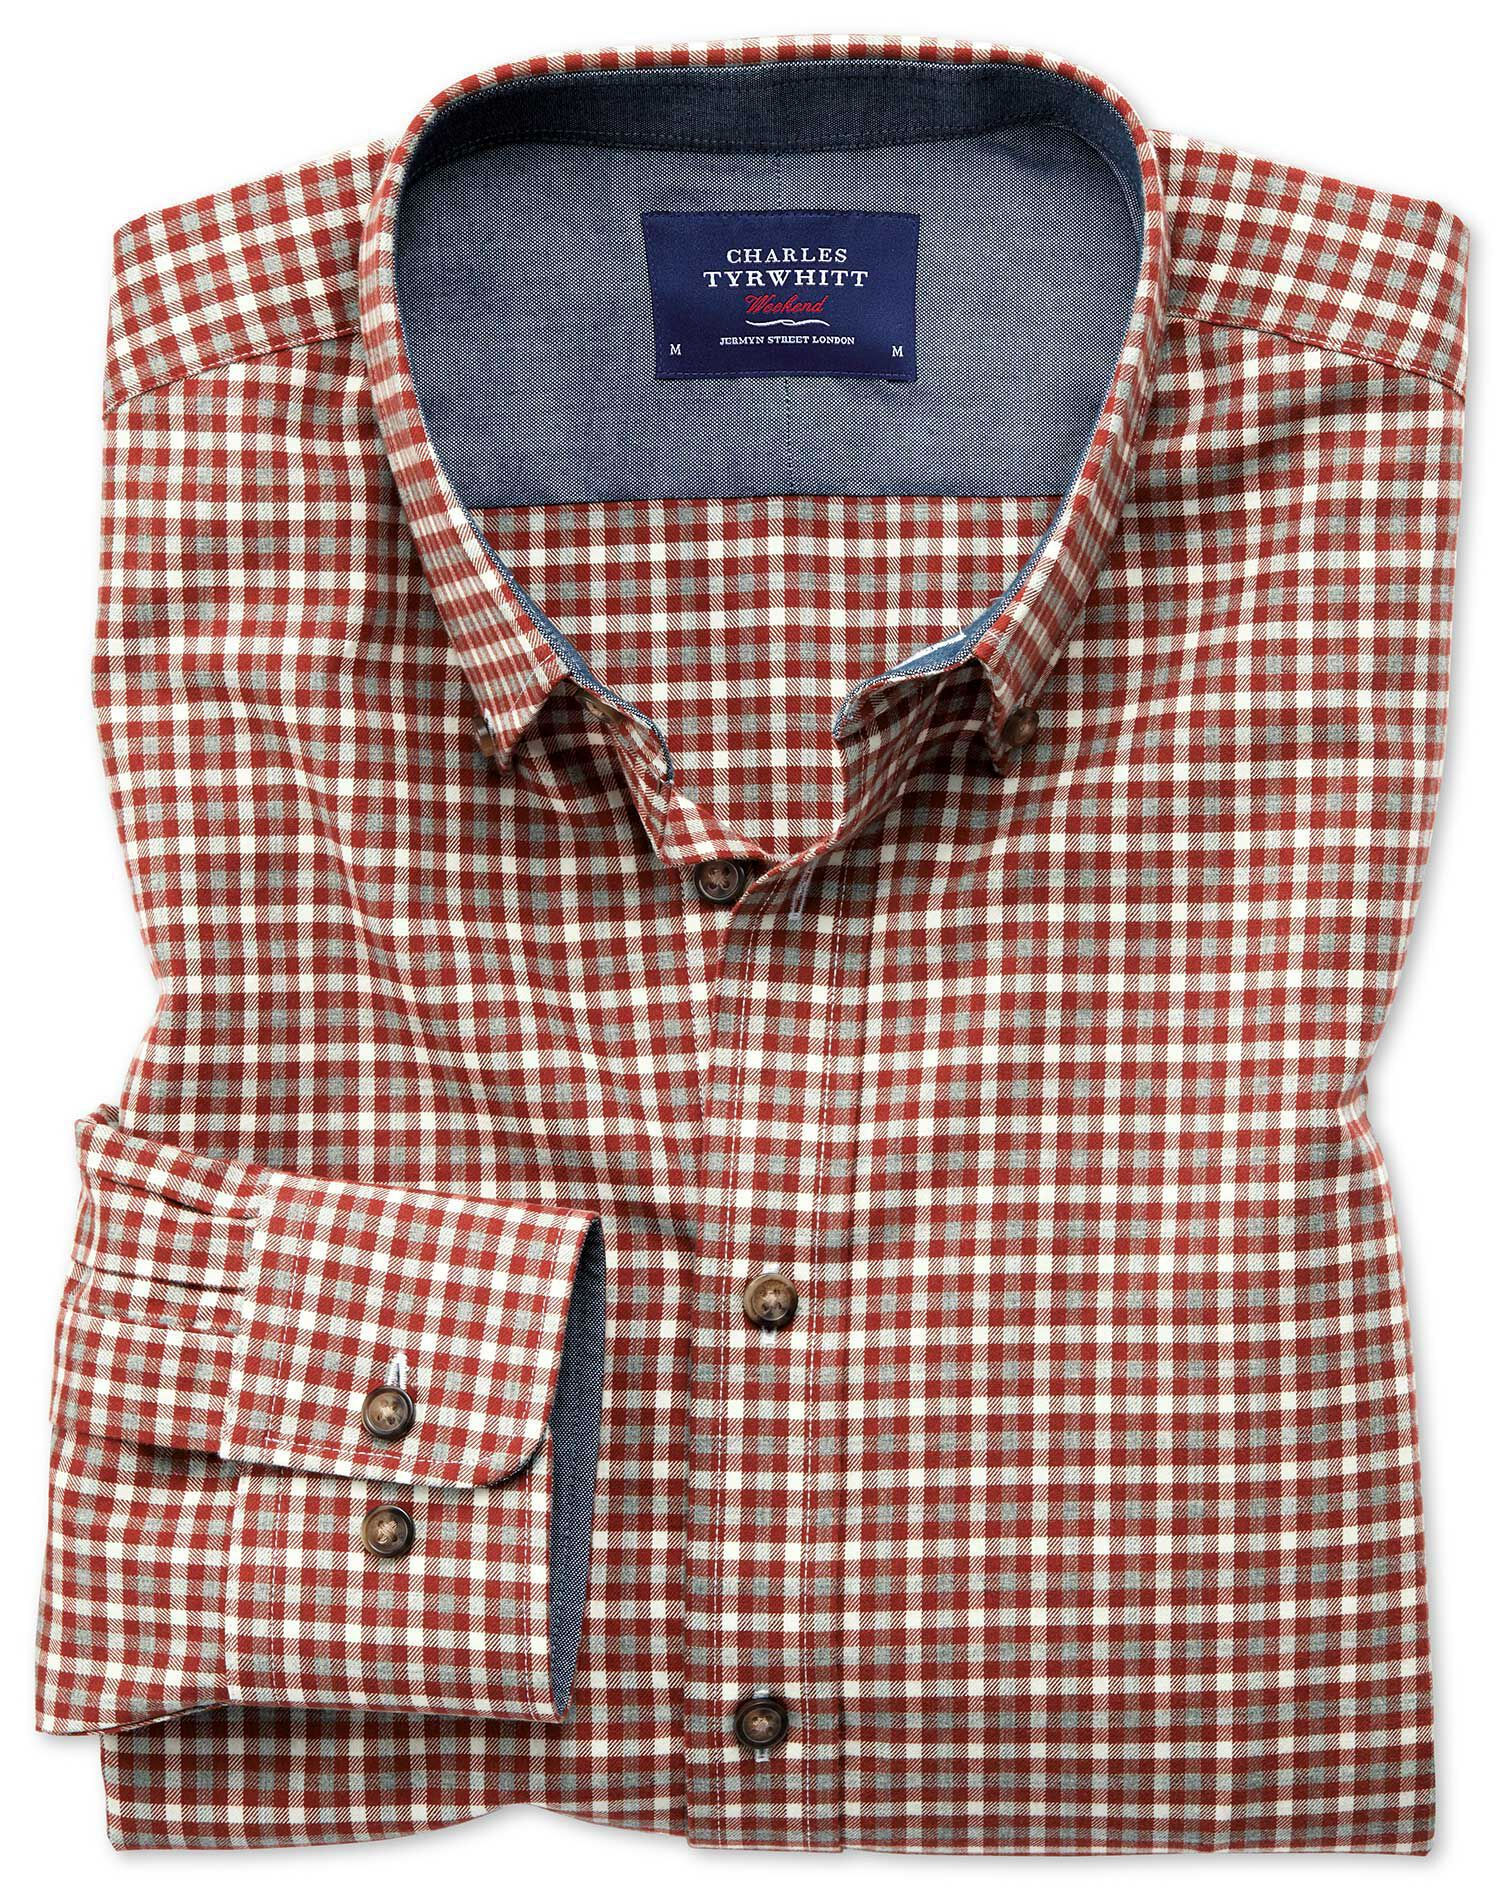 Classic Fit Button-Down Soft Cotton Rust Multi Check Shirt Single Cuff Size XXXL by Charles Tyrwhitt